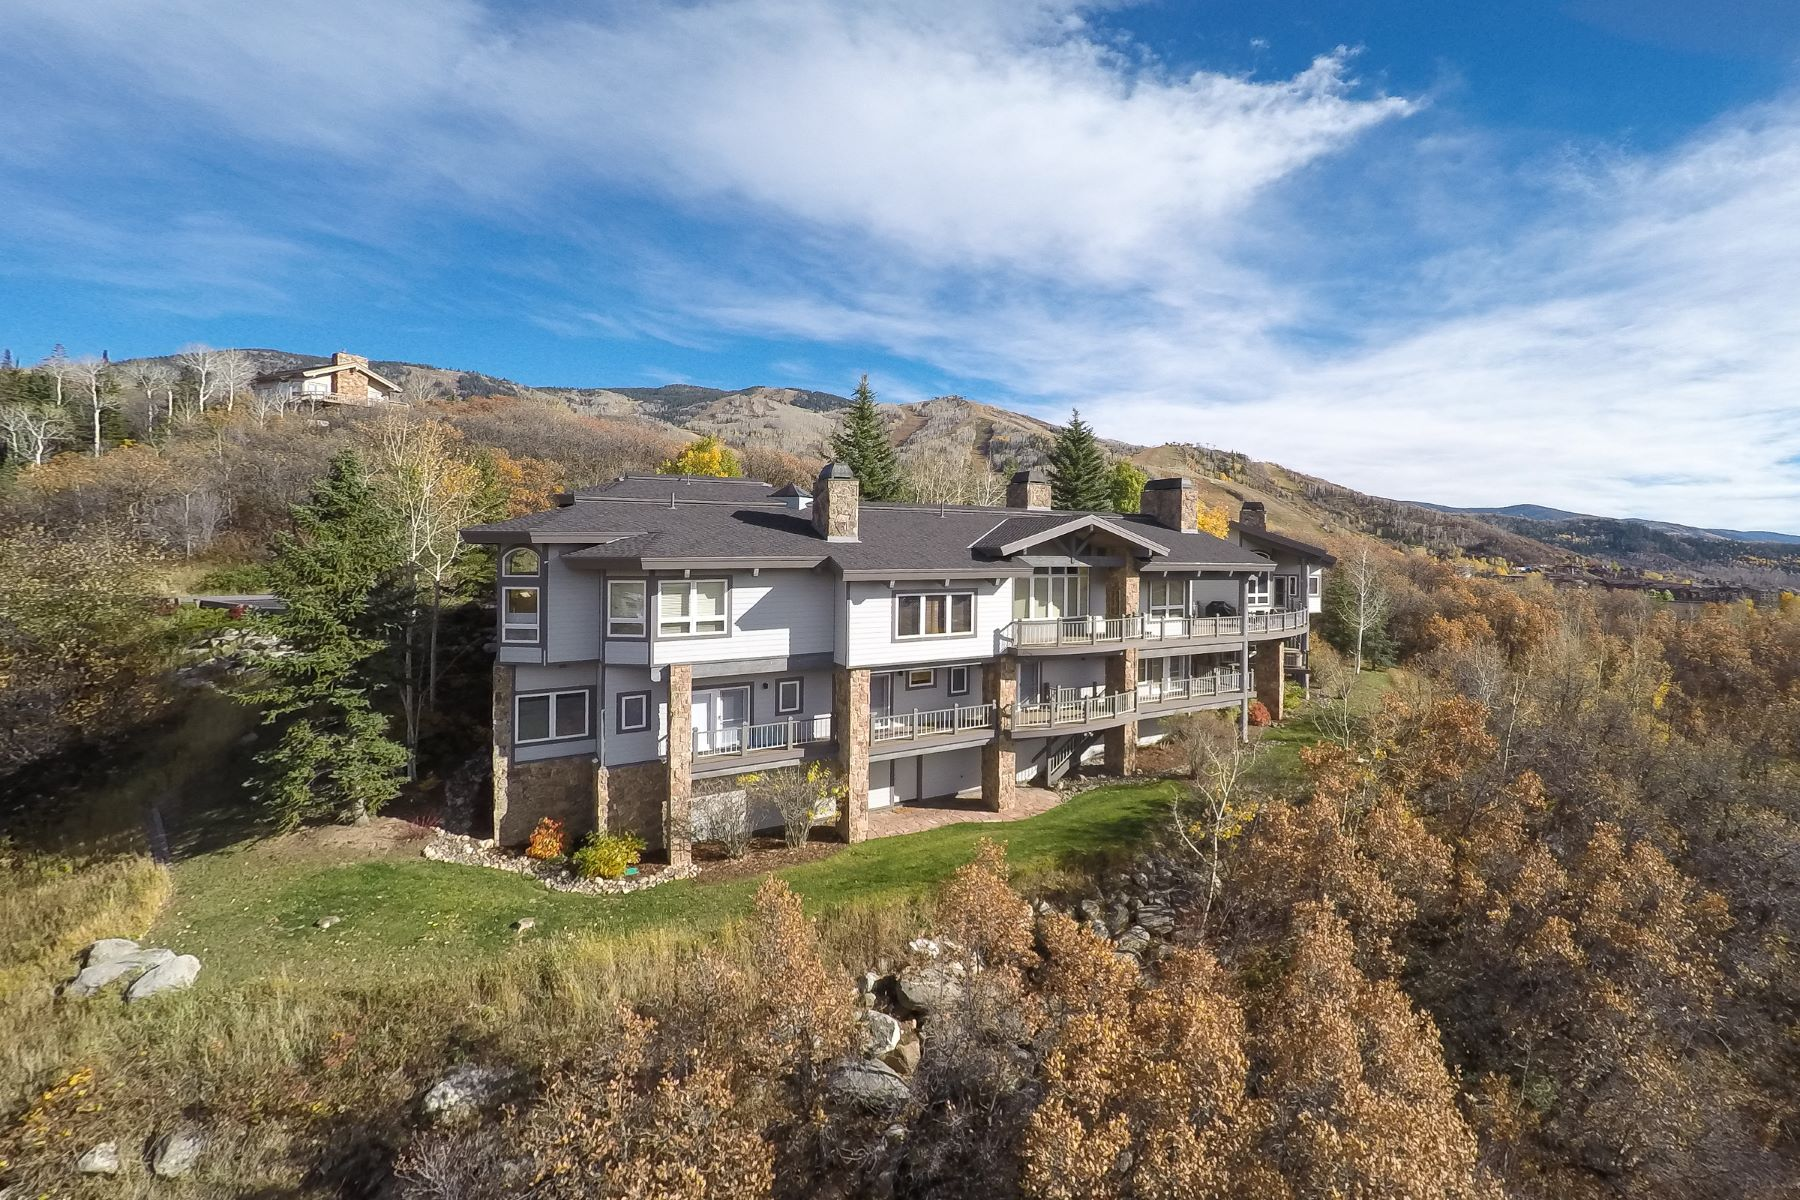 Single Family Home for Sale at 5 BD Home Overlooking the Rollingstone Golf Course 1295 Overlook Dr Steamboat Springs, Colorado 80487 United States